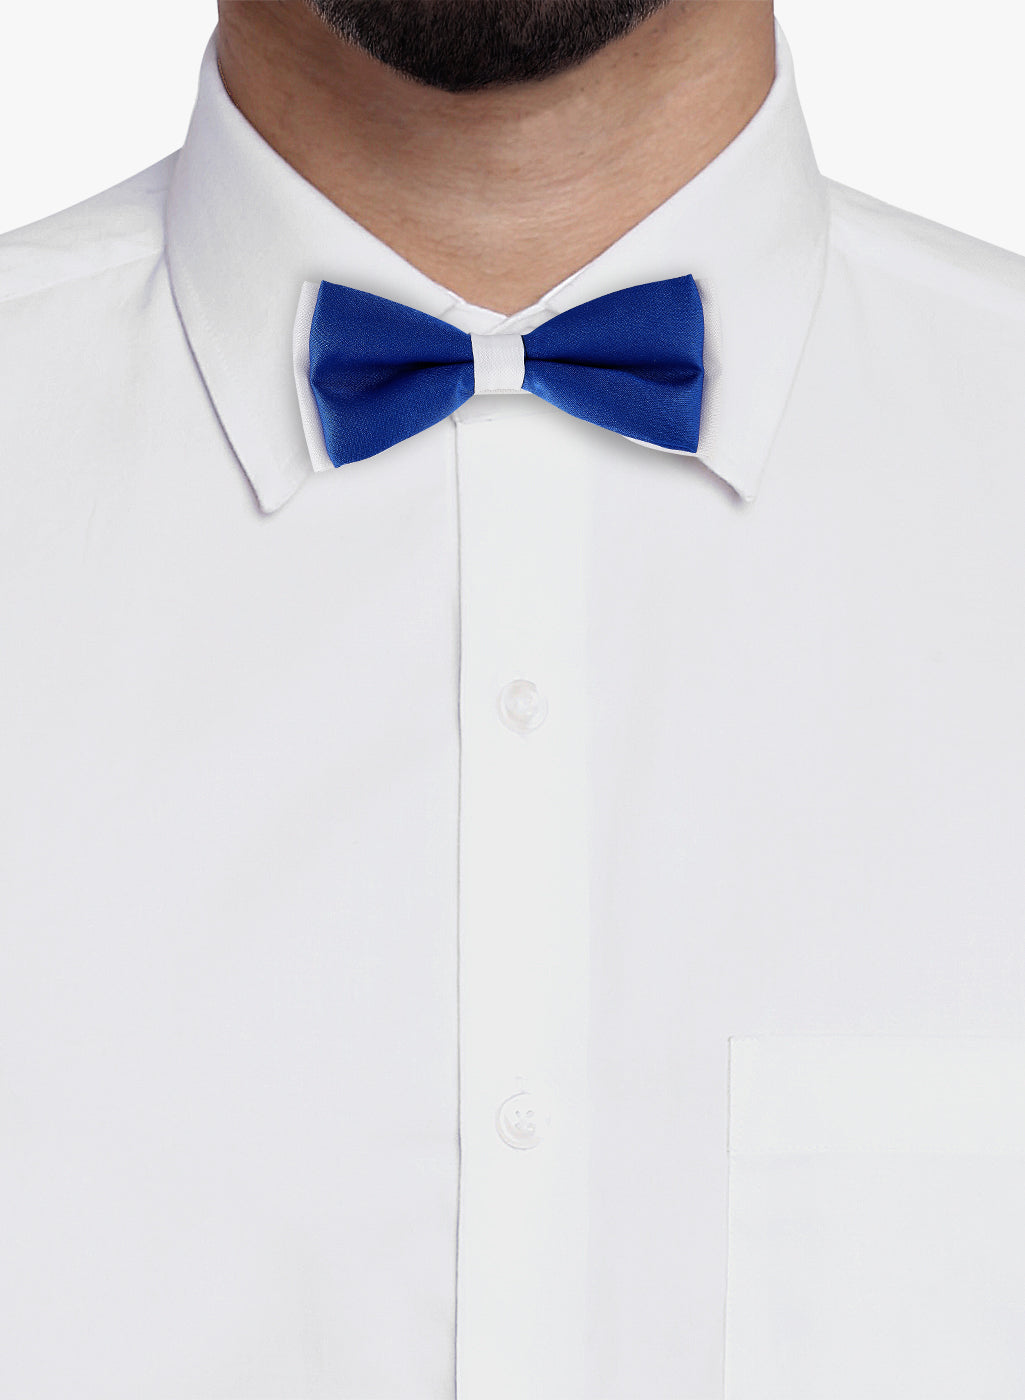 Zido Bow Tie for Men B2C082